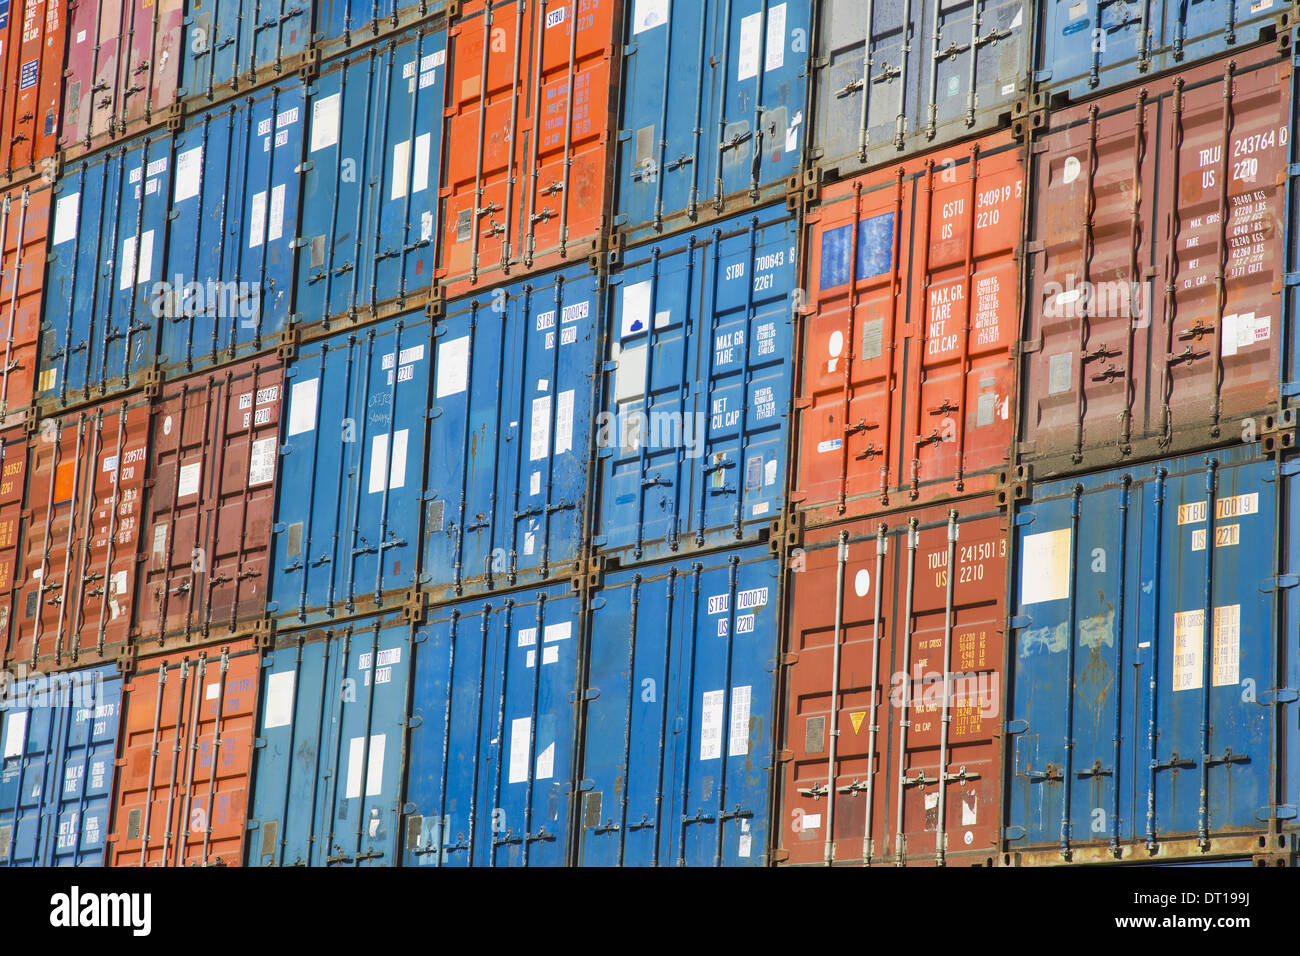 Seattle Washington USA cargo containers commercial freight containers - Stock Image